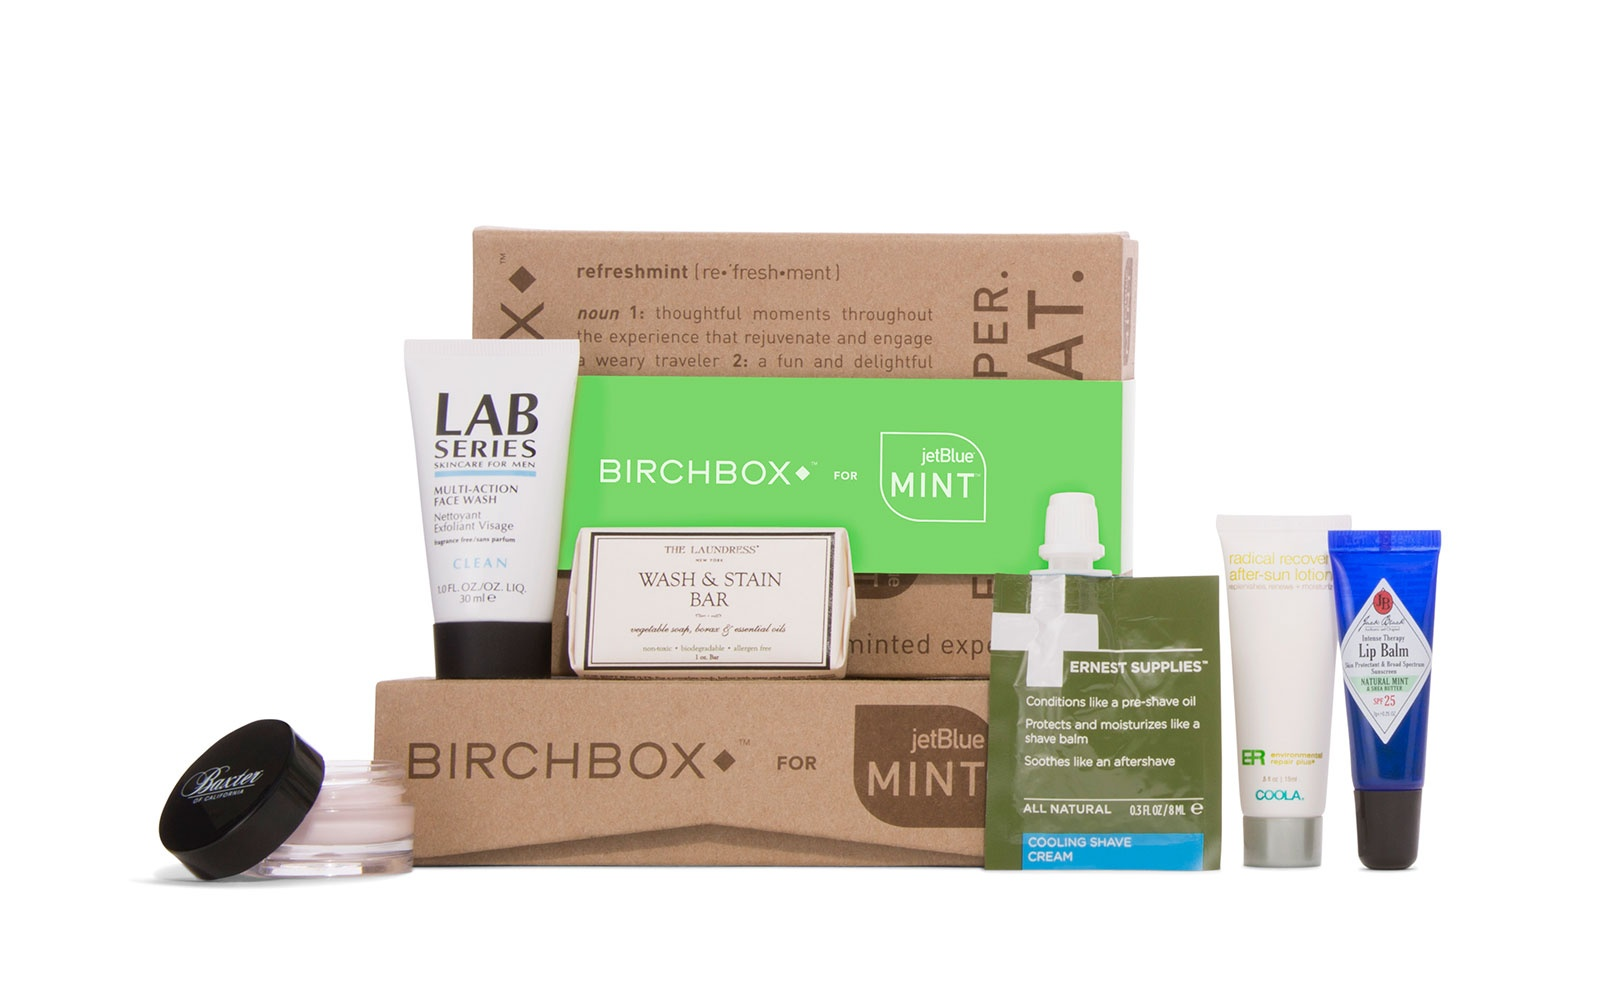 JetBlue: Birchbox for Mint Experience